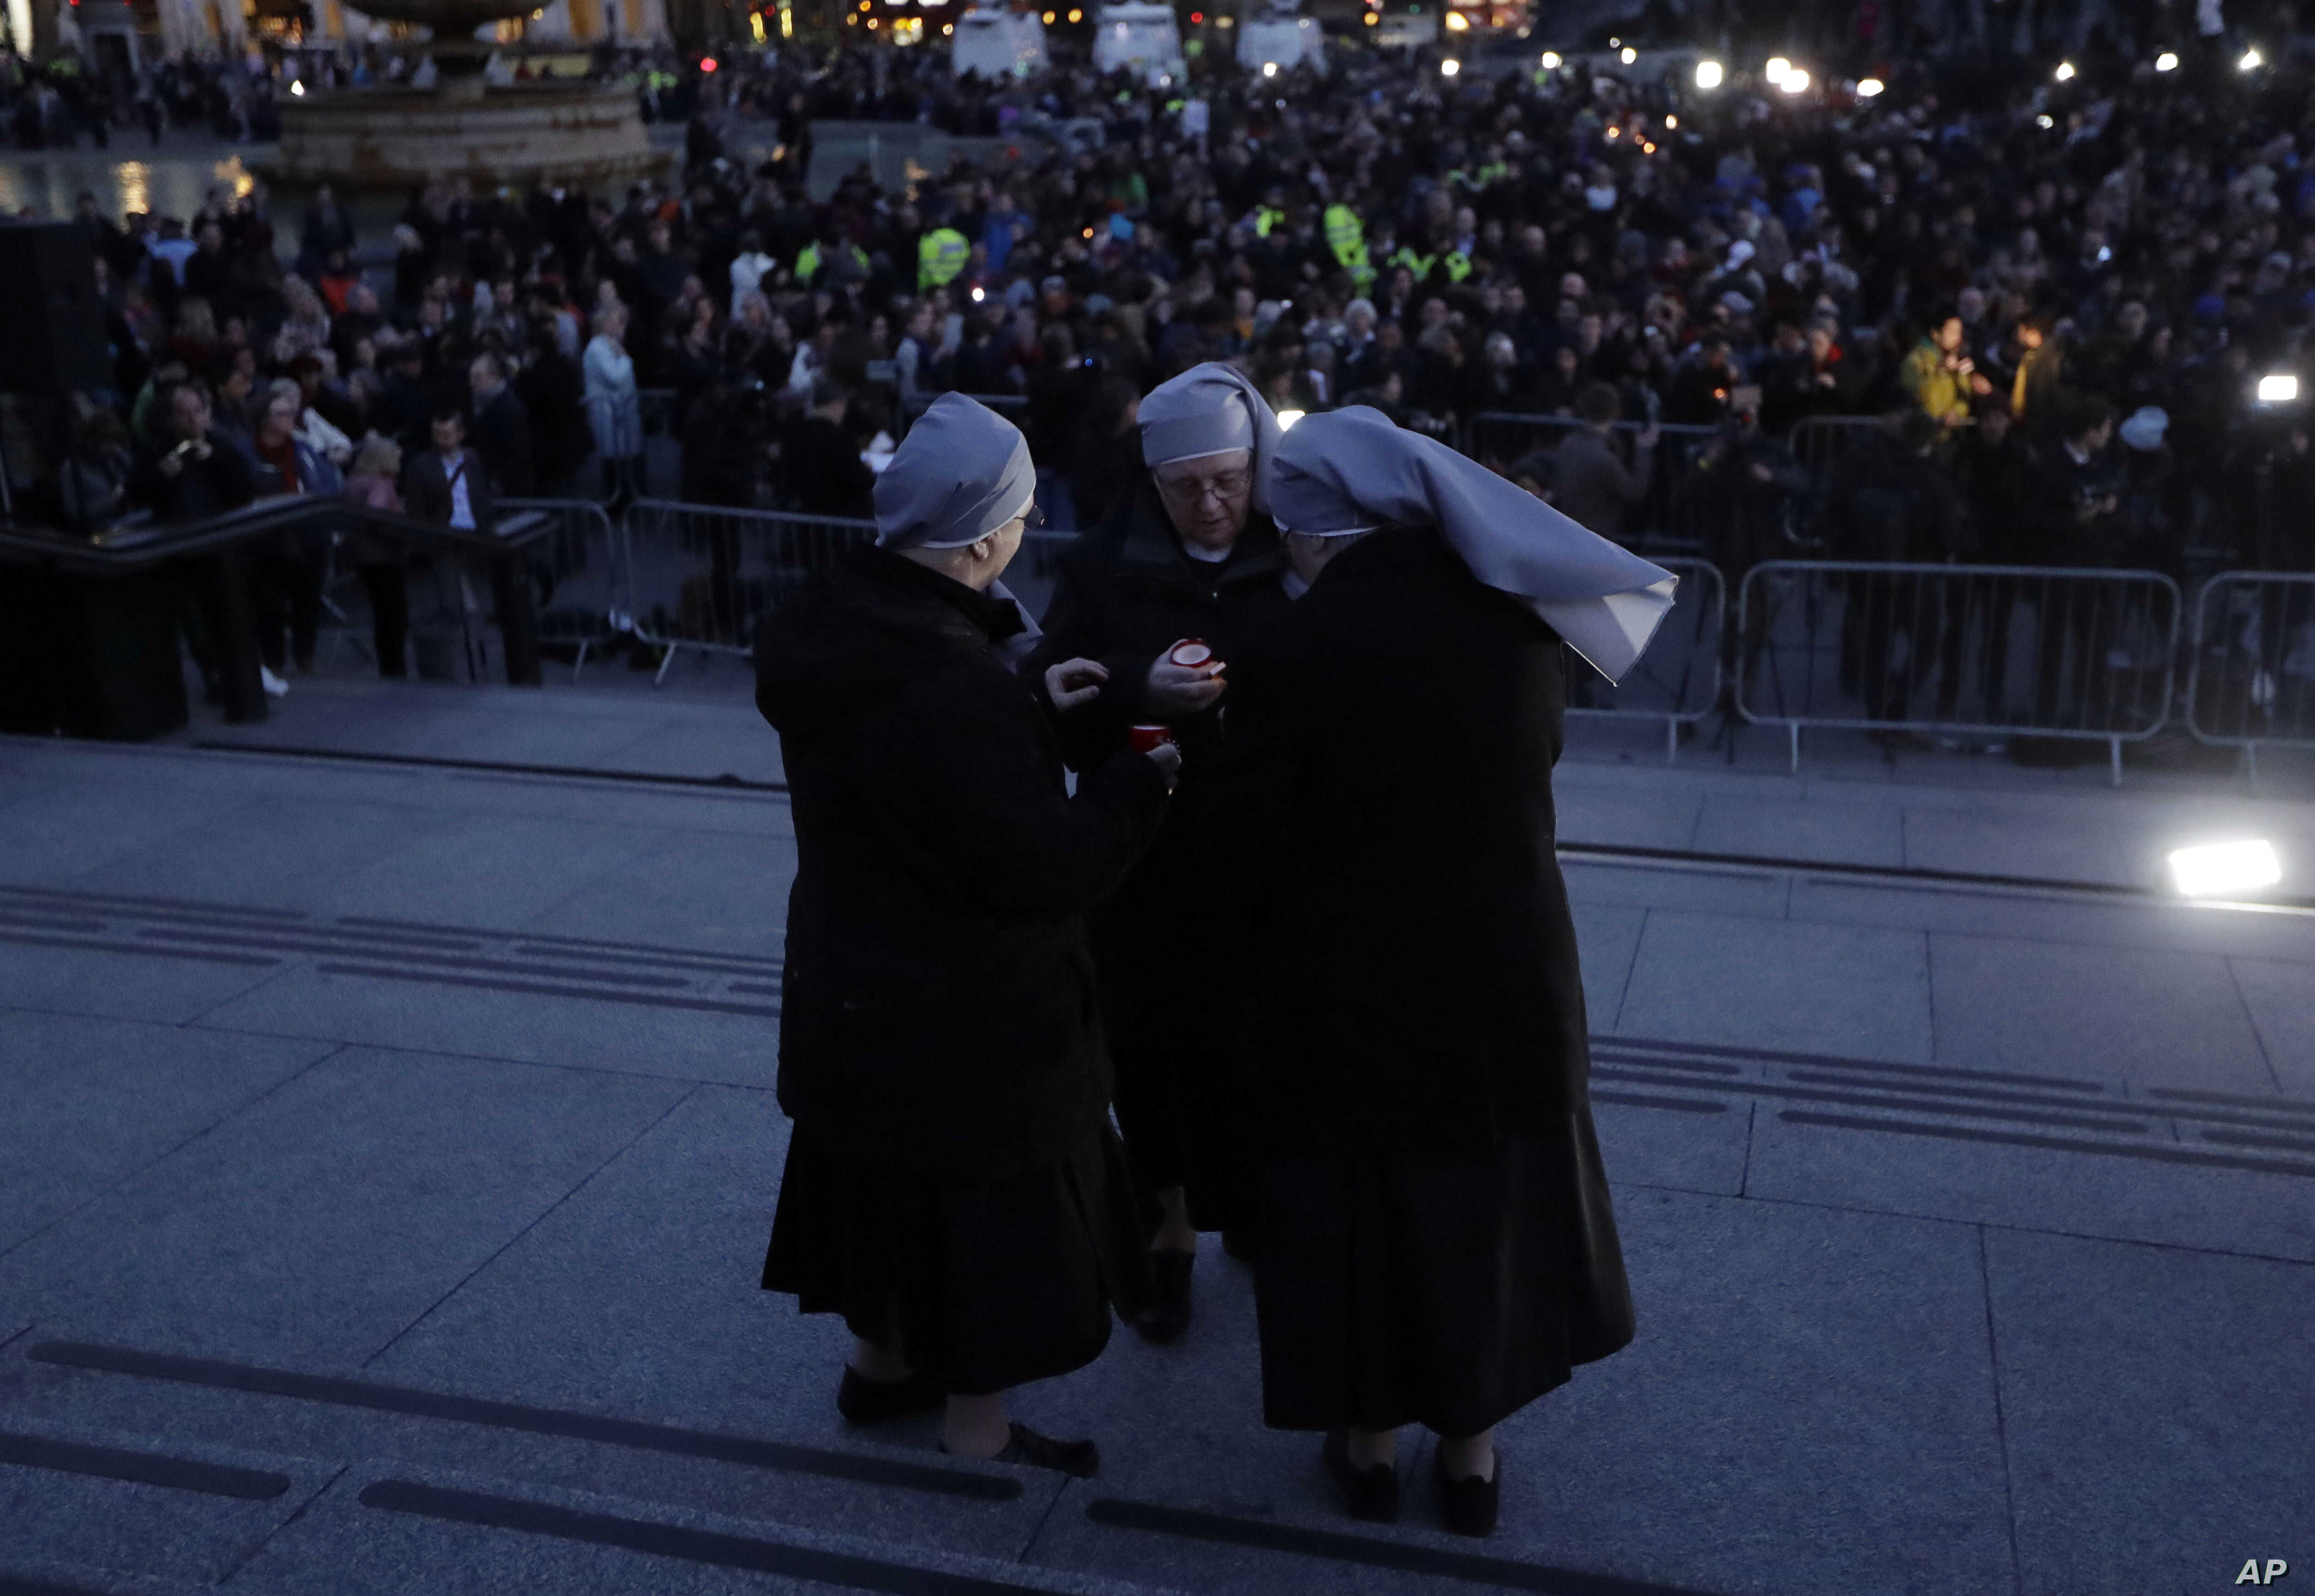 A group of nuns light candles at a vigil for the victims of Wednesday's attack, at Trafalgar Square in London, March 23, 2017. Mayor Sadiq Khan called for Londoners to attend the vigil in solidarity with the victims and their families and to show tha...